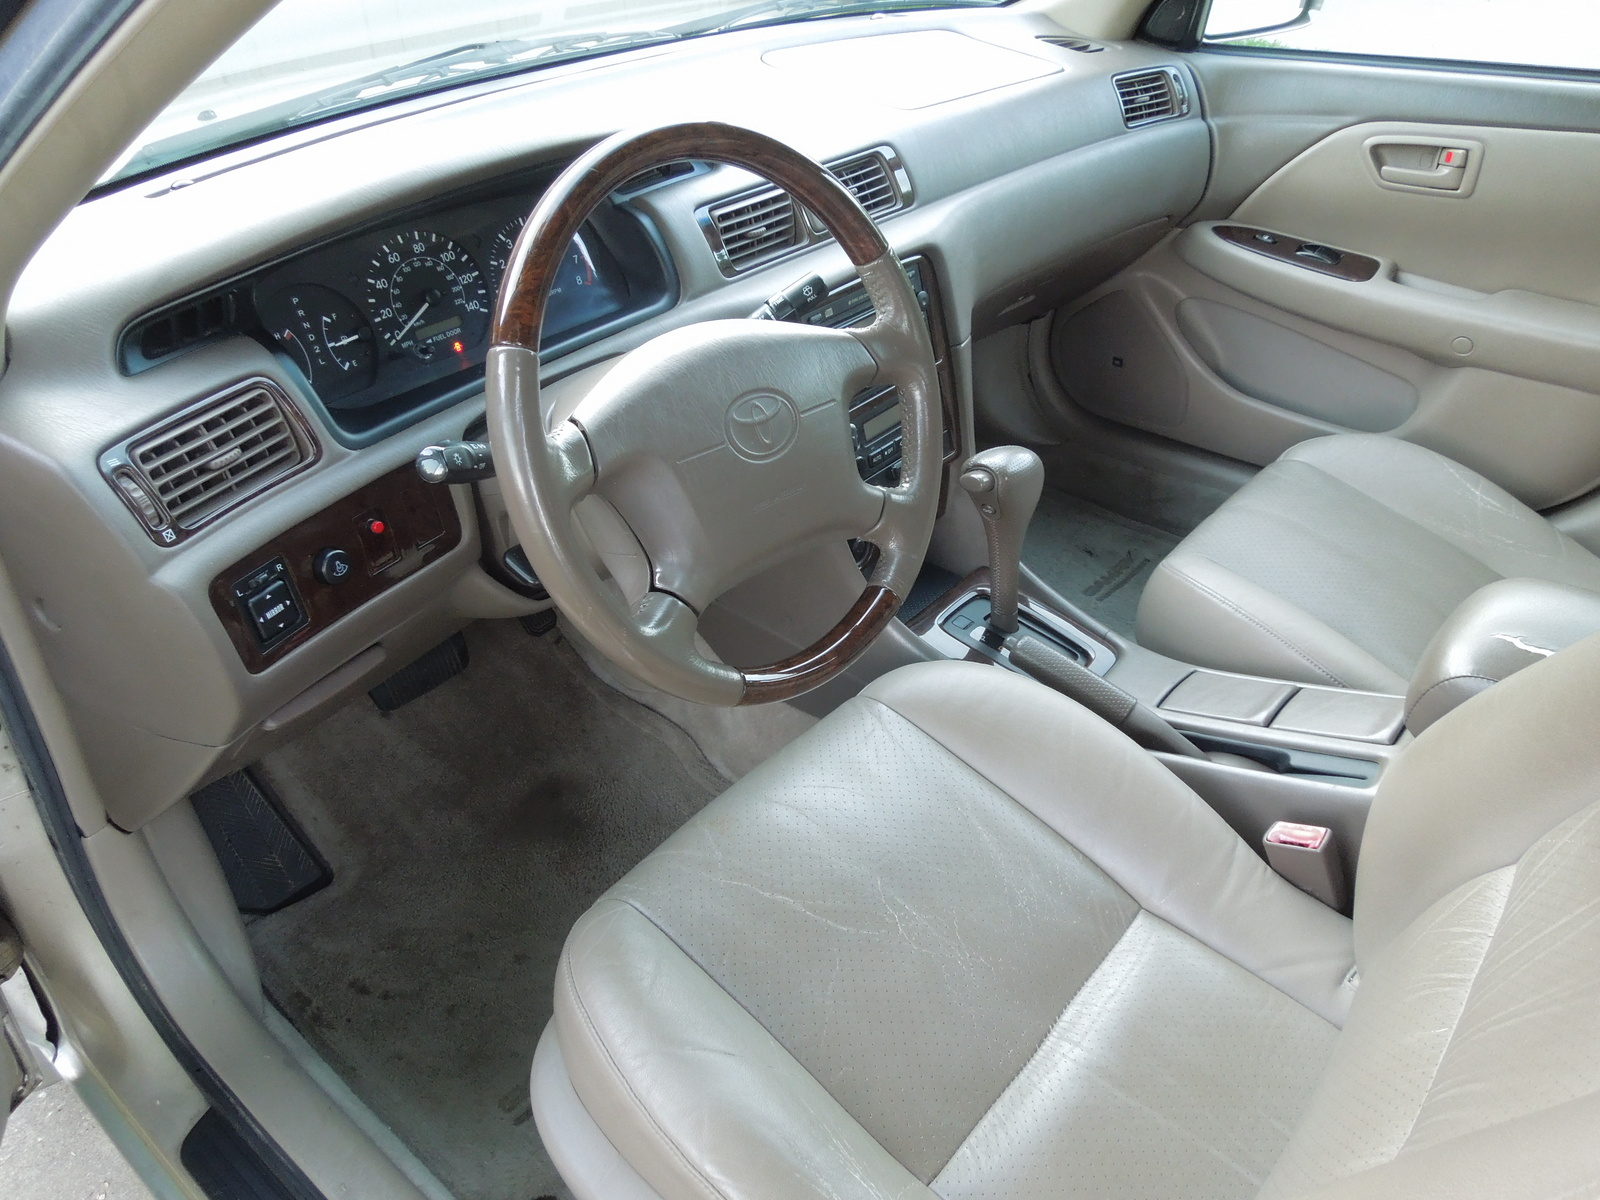 2001 toyota camry interior pictures cargurus. Black Bedroom Furniture Sets. Home Design Ideas